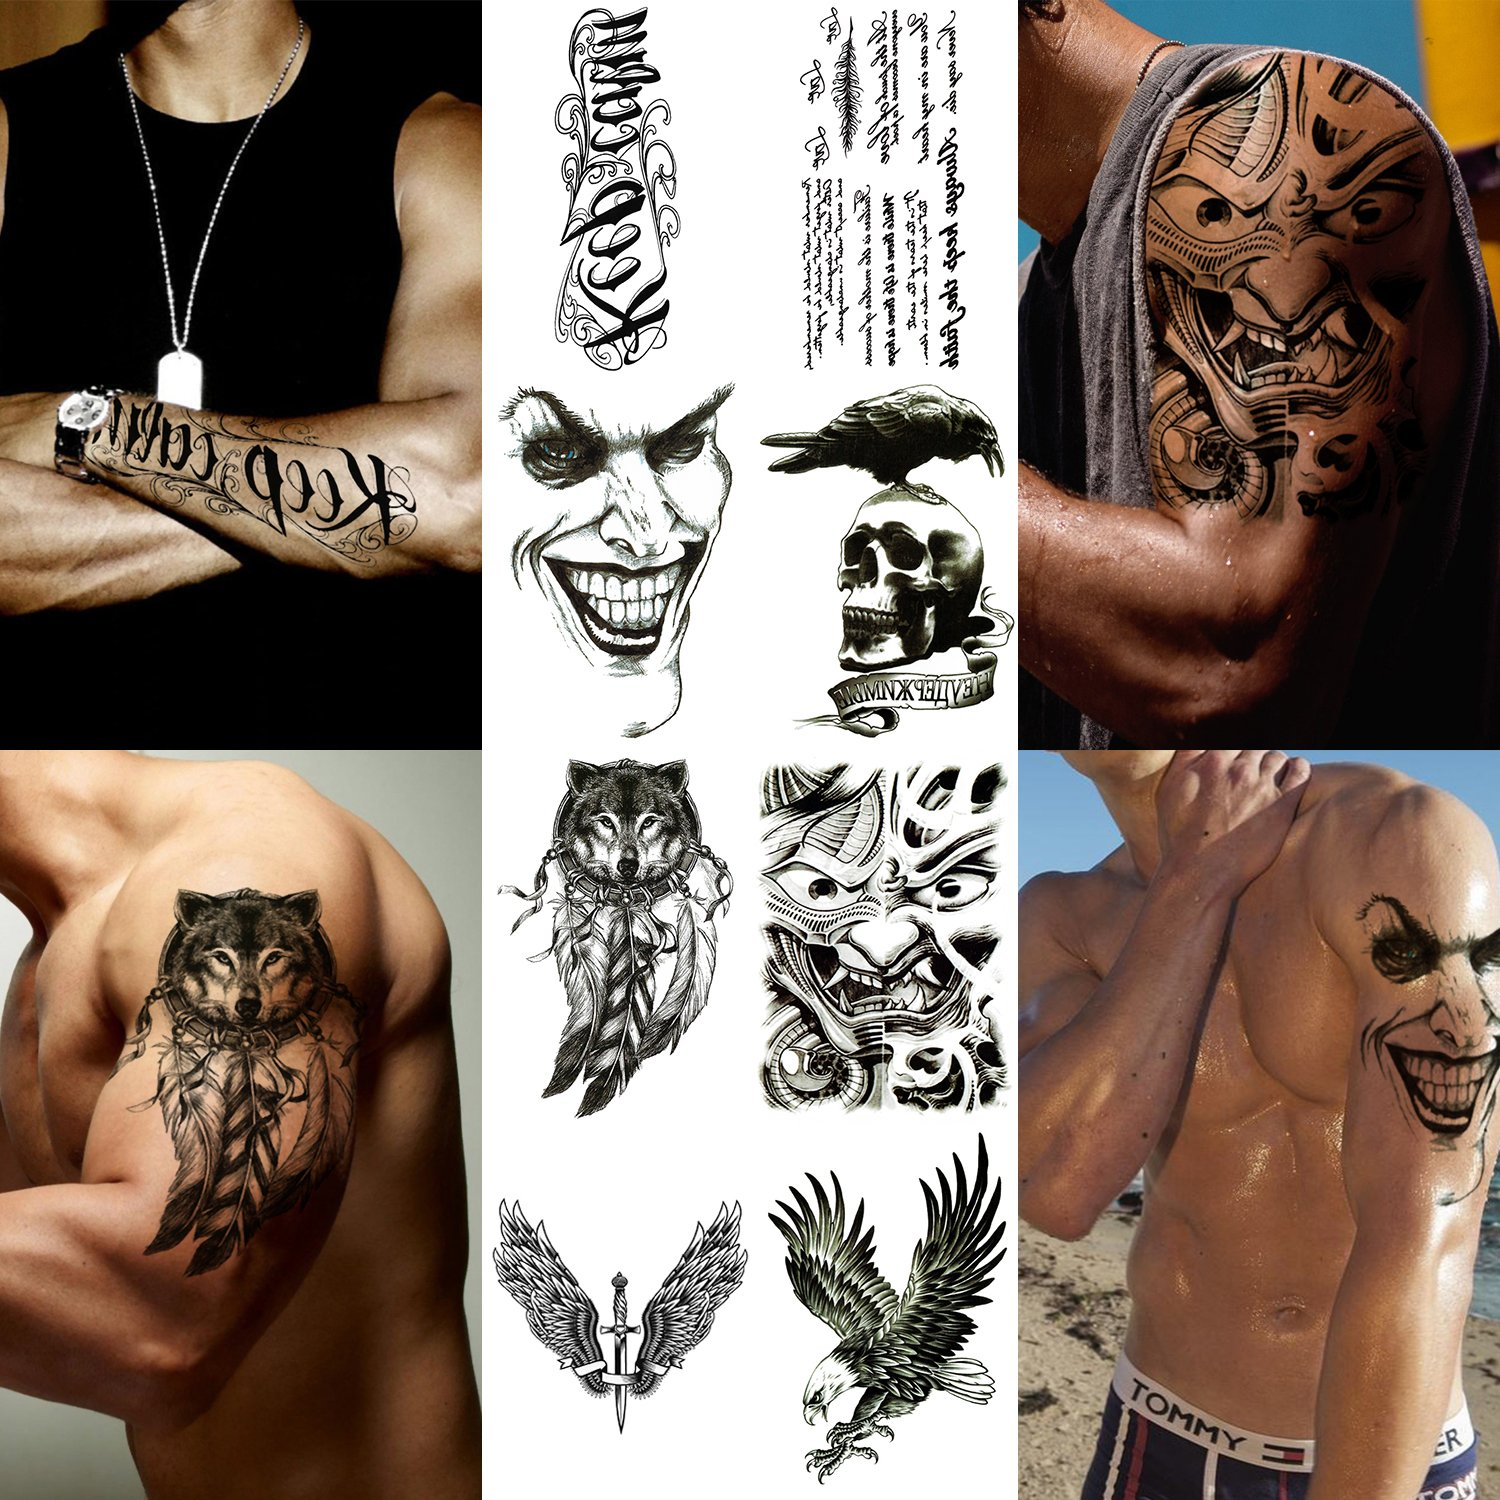 Amazon Com Playmax 8 Sheets Of Stylish Waterproof Long Lasting Rocker Cool Evil Design Wolf Eagle Crow Skull Sword Winds Words Body Arms Shoulders Chest Back Temporary Tattoo Stickers For Teens Guys